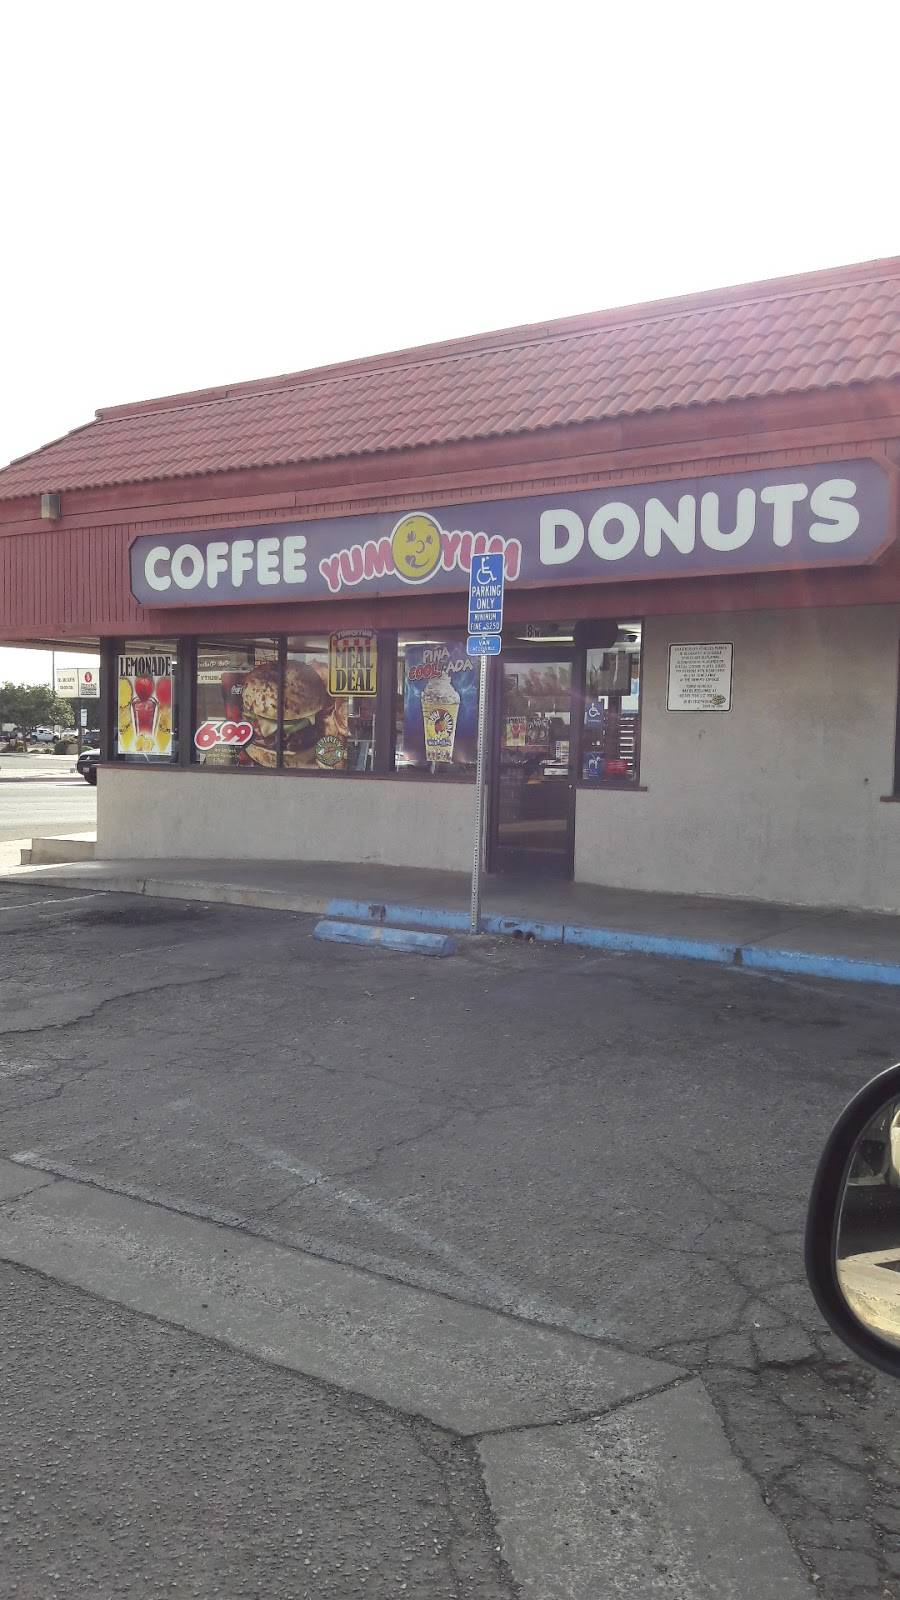 Yum Yum Donuts | bakery | 8 Olive Ave, Porterville, CA 93257, USA | 5597849717 OR +1 559-784-9717